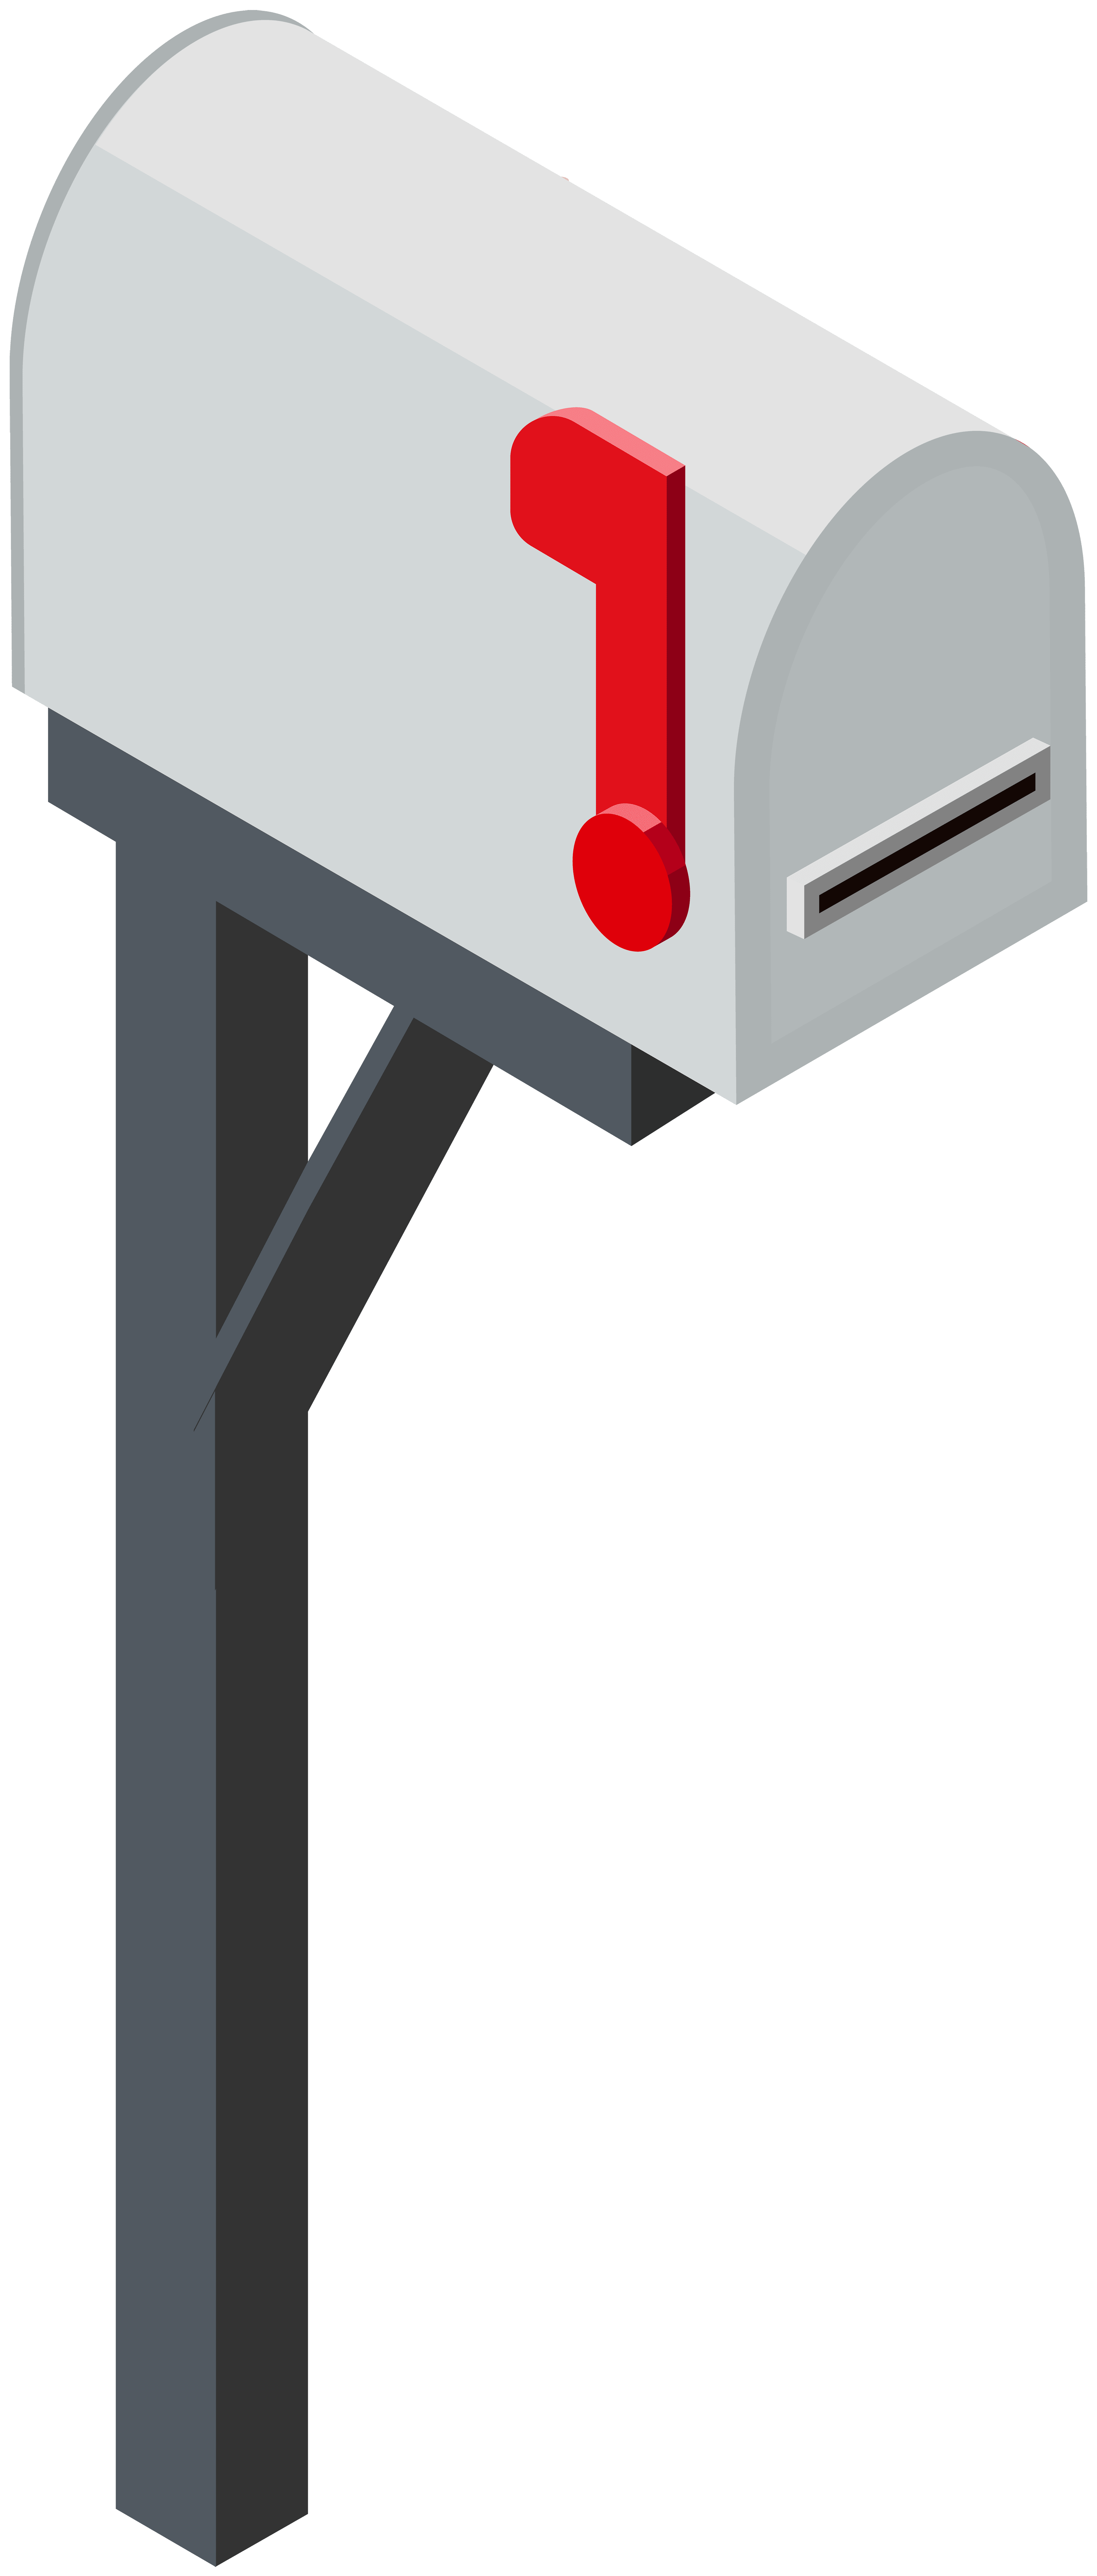 Png free images toppng. Mailbox clipart vintage mailbox